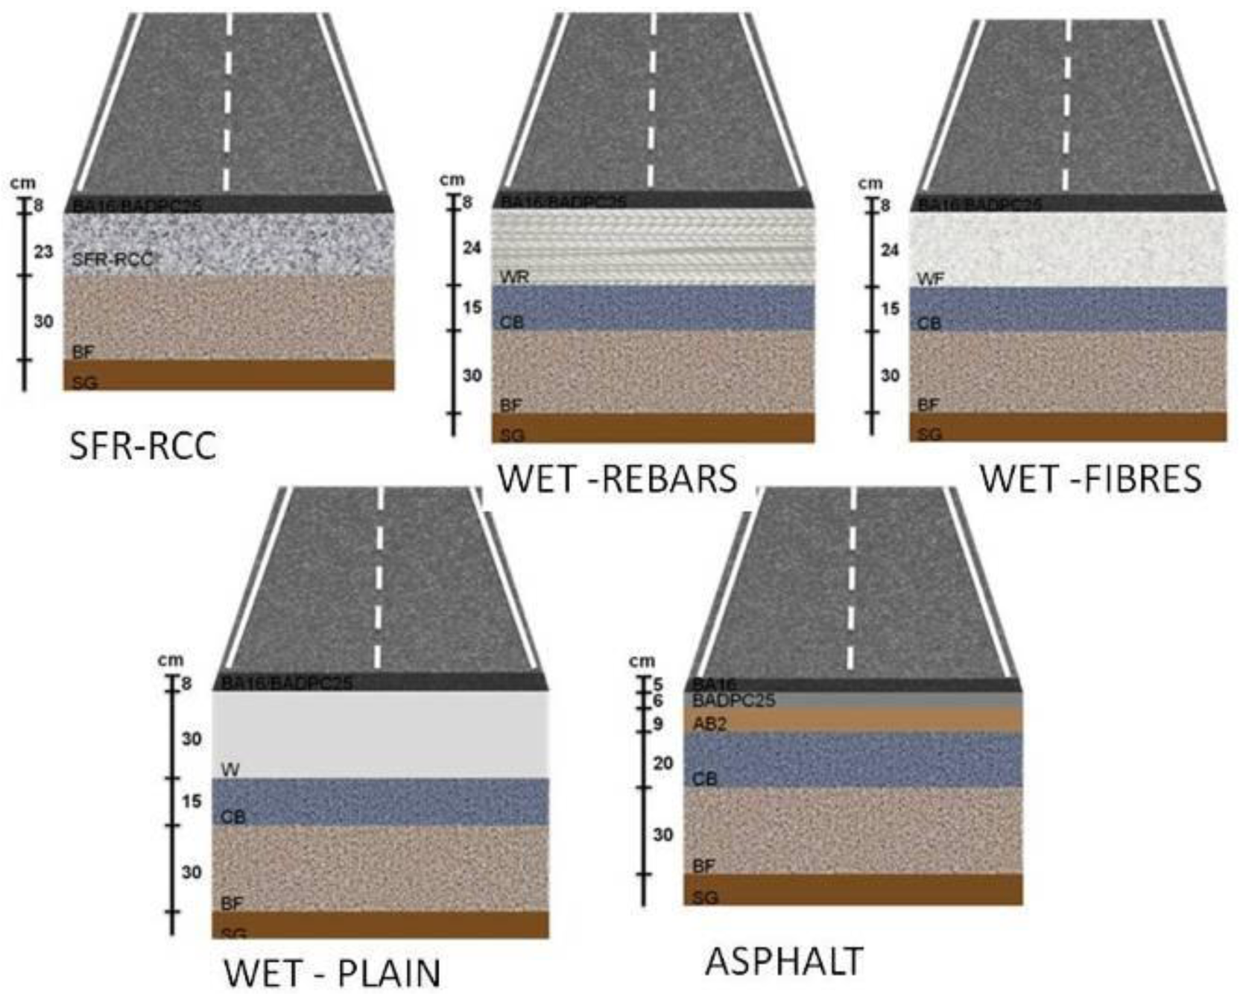 thesis on concrete mix design Economical concrete mix designs for highway applications with a high dosage of flyash by rimpal v shah a thesis.